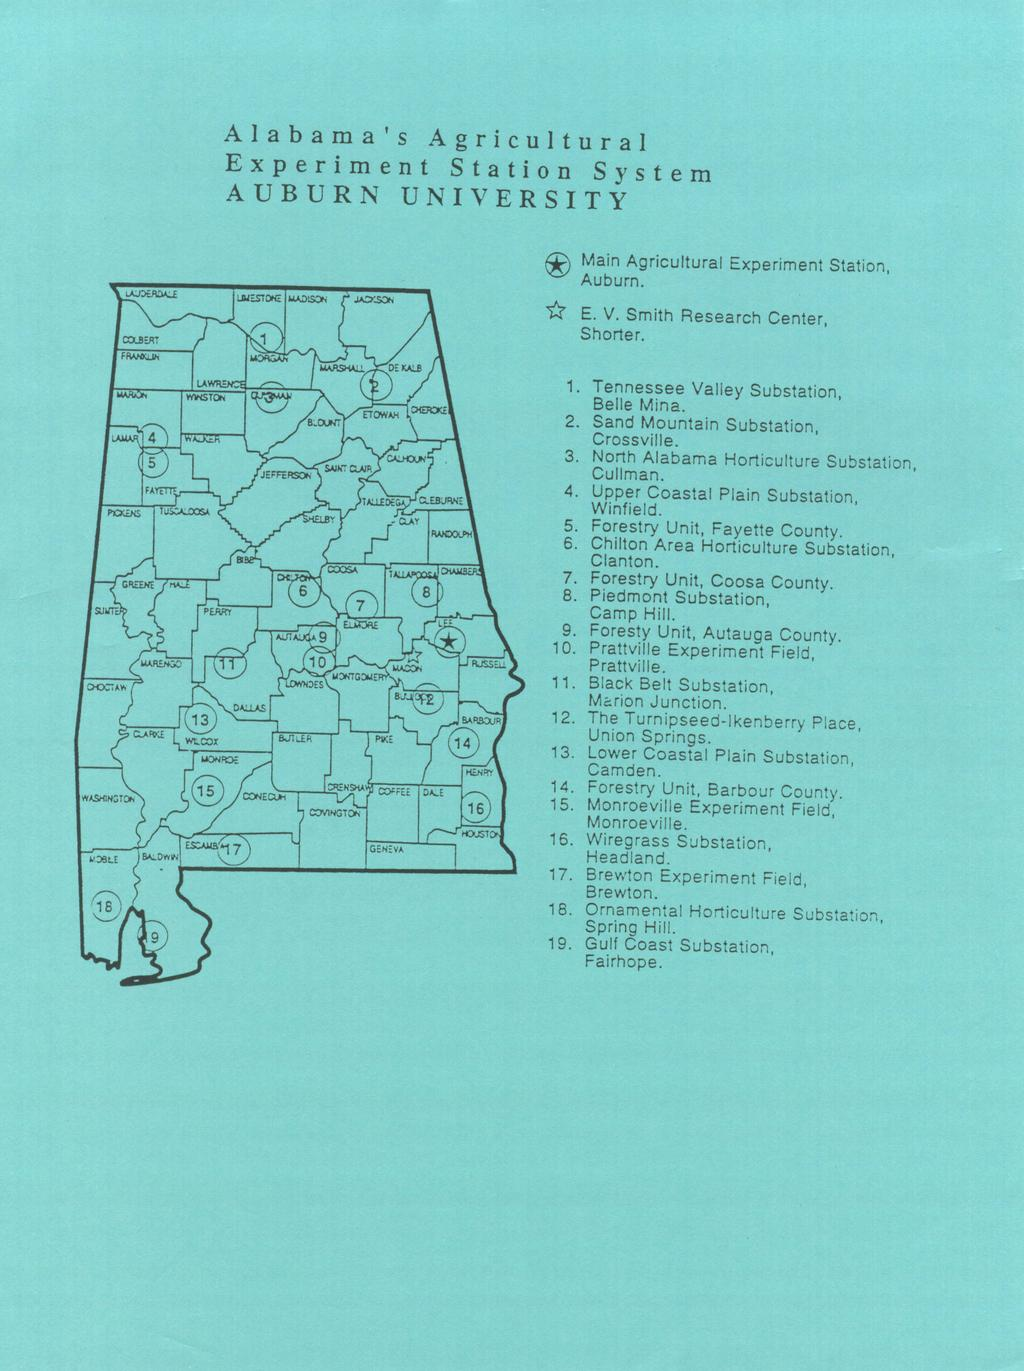 Alabama's Agricultural Experiment Station Svstem AUBURN UNIVERSITY -W:= C W'AD.5 JAX11 SMain Agricutural Experiment Station, Auburn. E. V. Smith Research Center, Shorter. 1.